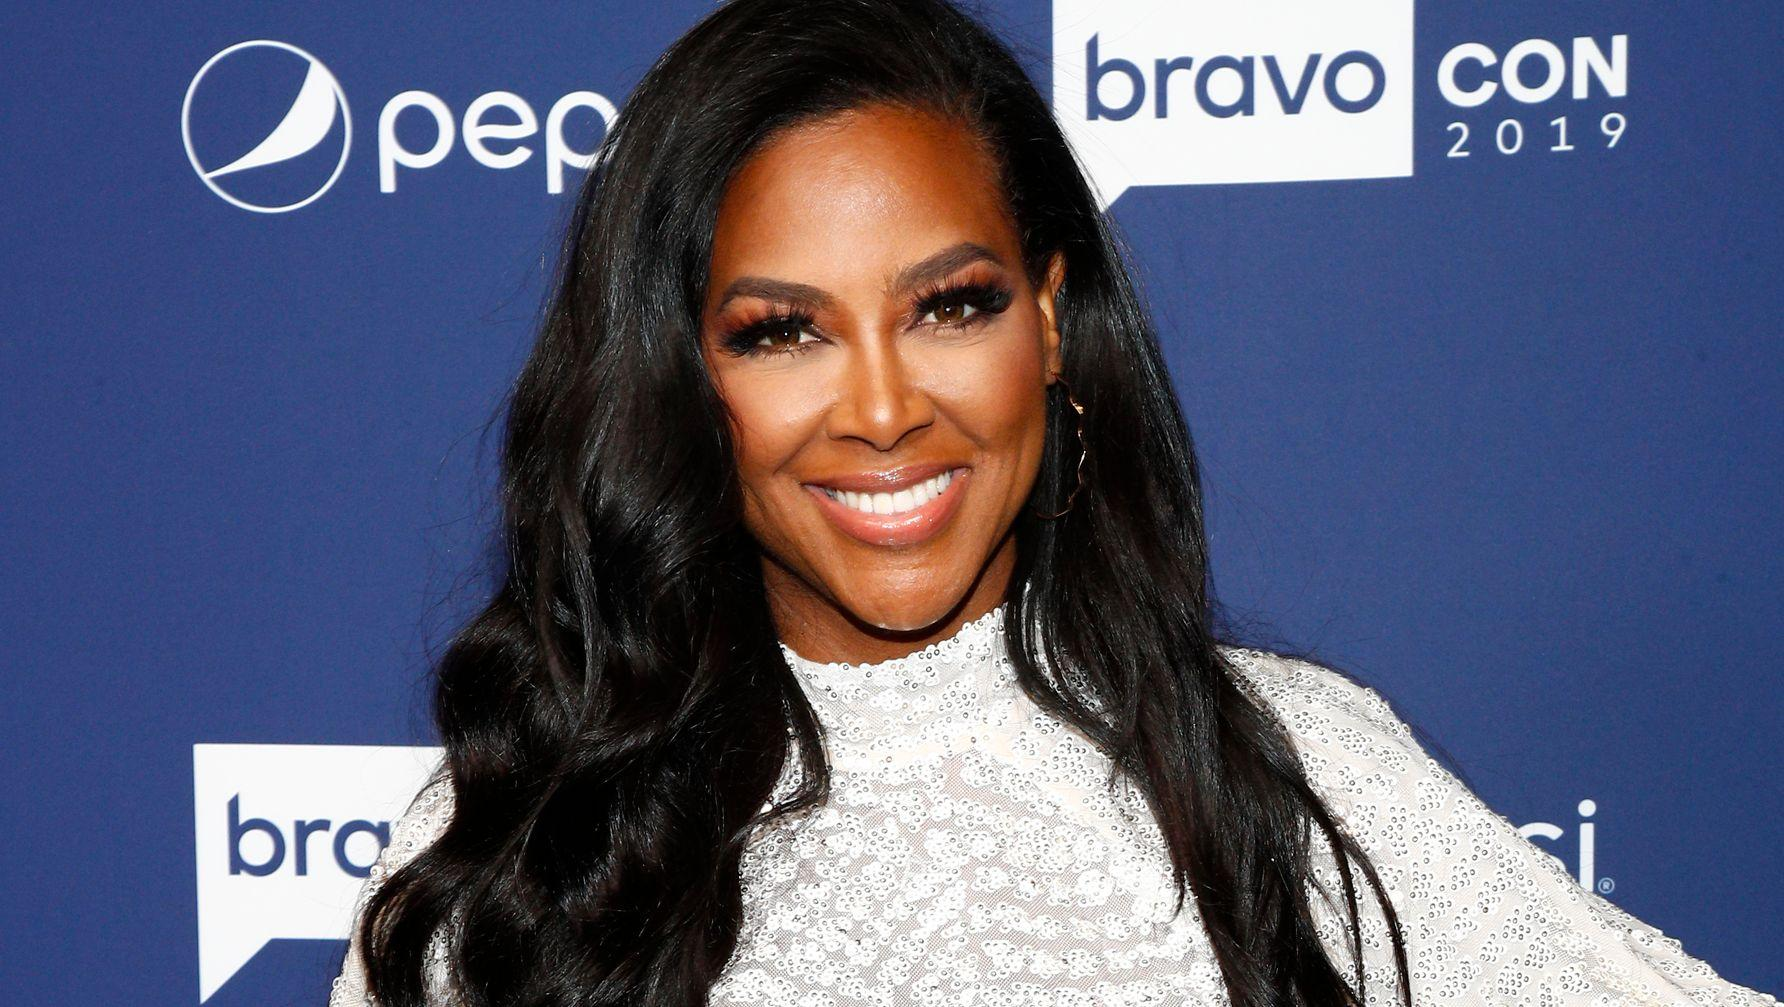 Kenya Moore Proves That She Can Shine Under Any Light - Check Out Her Latest Photo